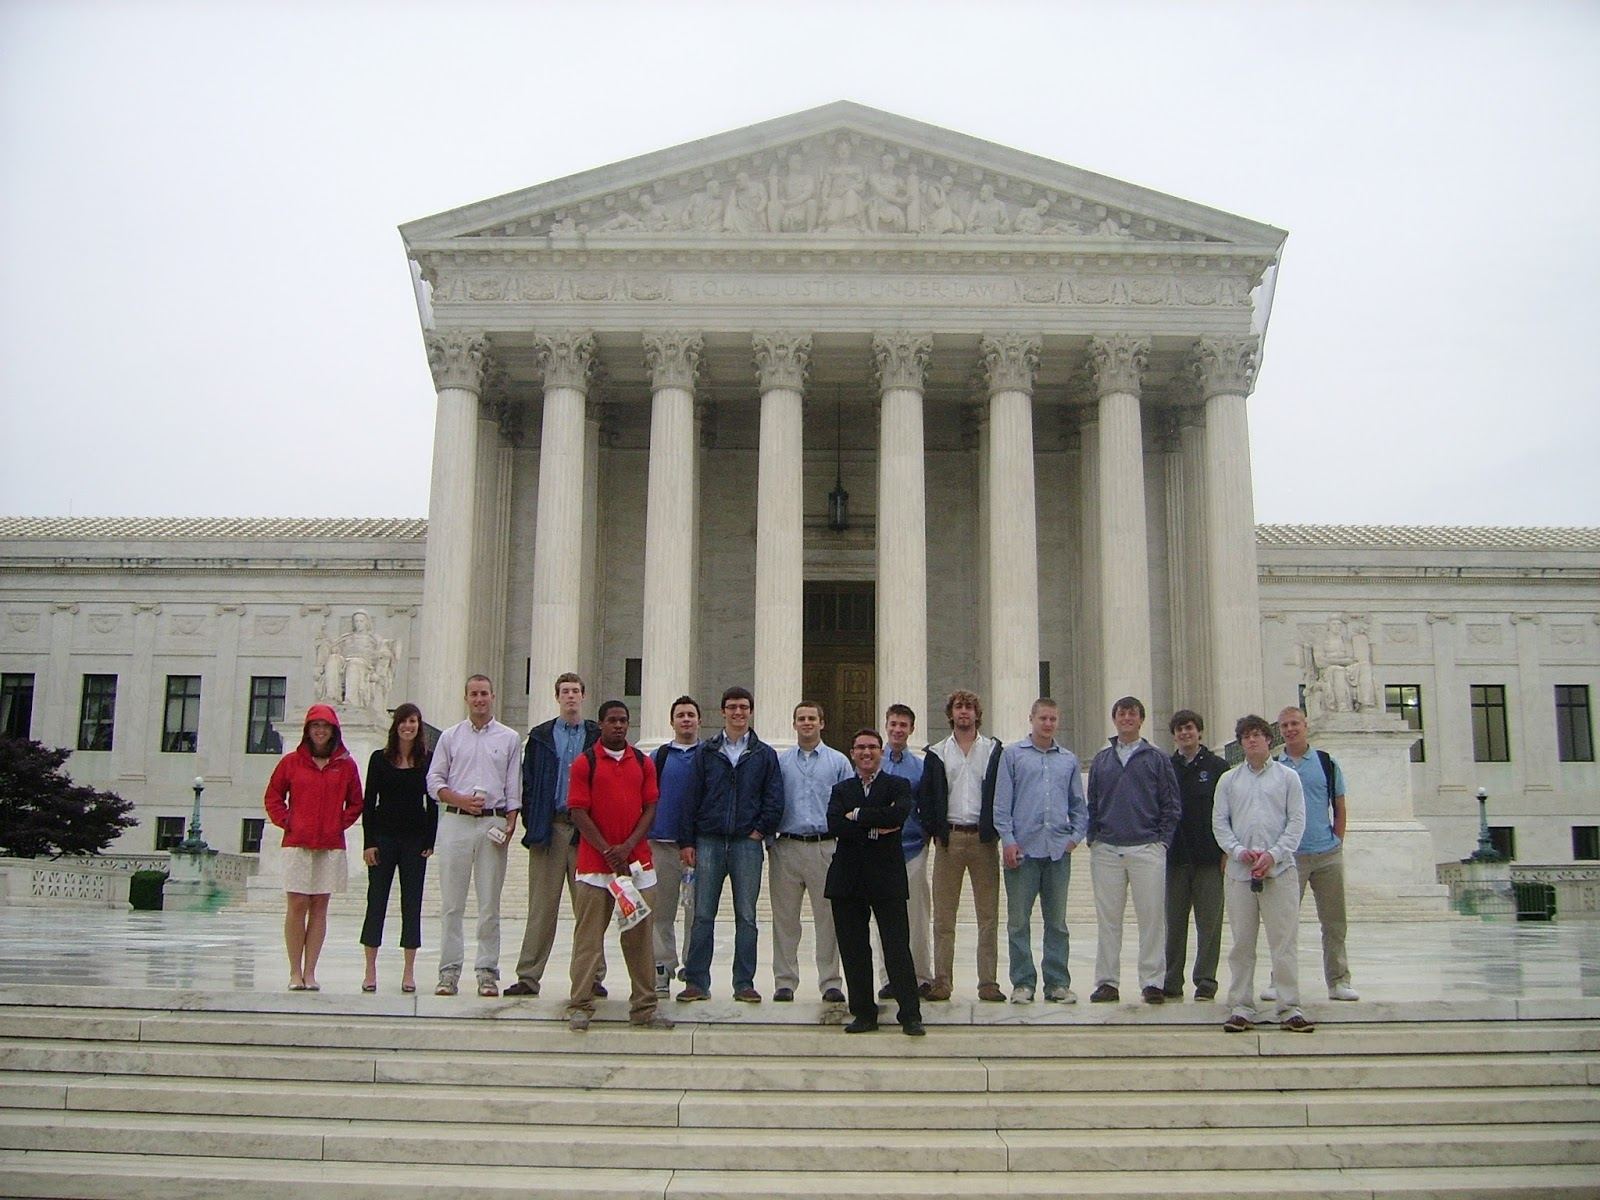 u s supreme court case studies Policeone analysis: 12 supreme court cases in that case, the supreme court ruled that the city of new 391 us 1 (1968), the supreme court ruled that an.